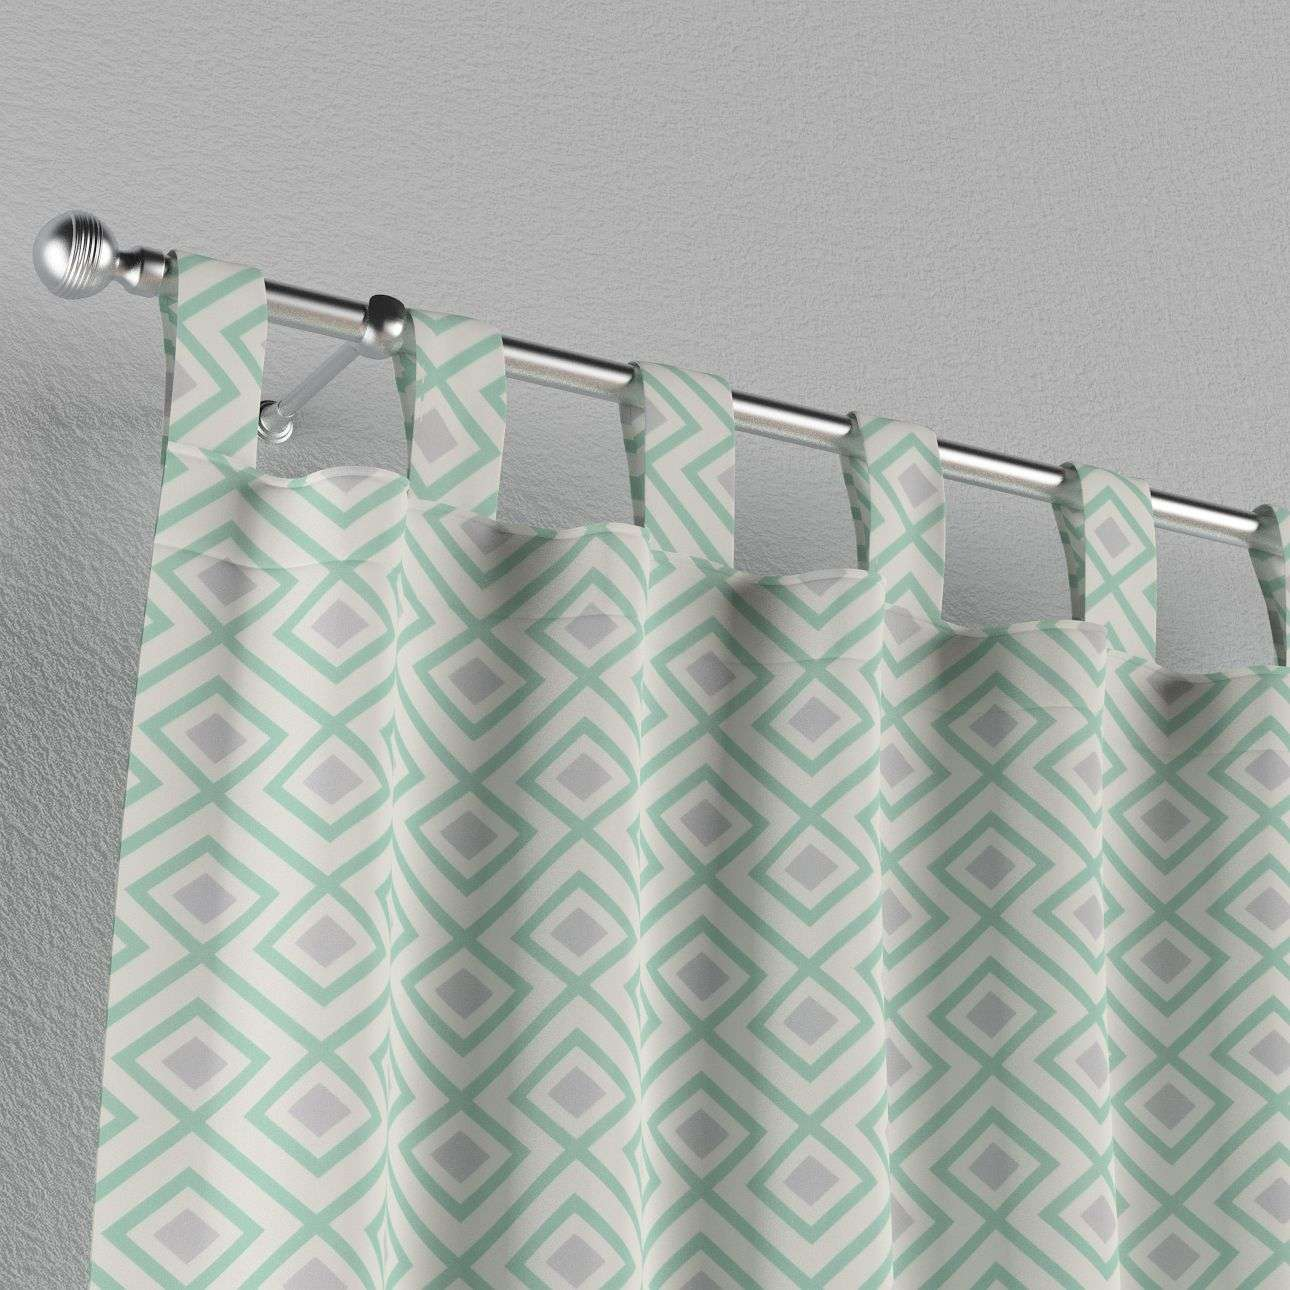 Tab top curtains 130 x 260 cm (51 x 102 inch) in collection Geometric, fabric: 141-45